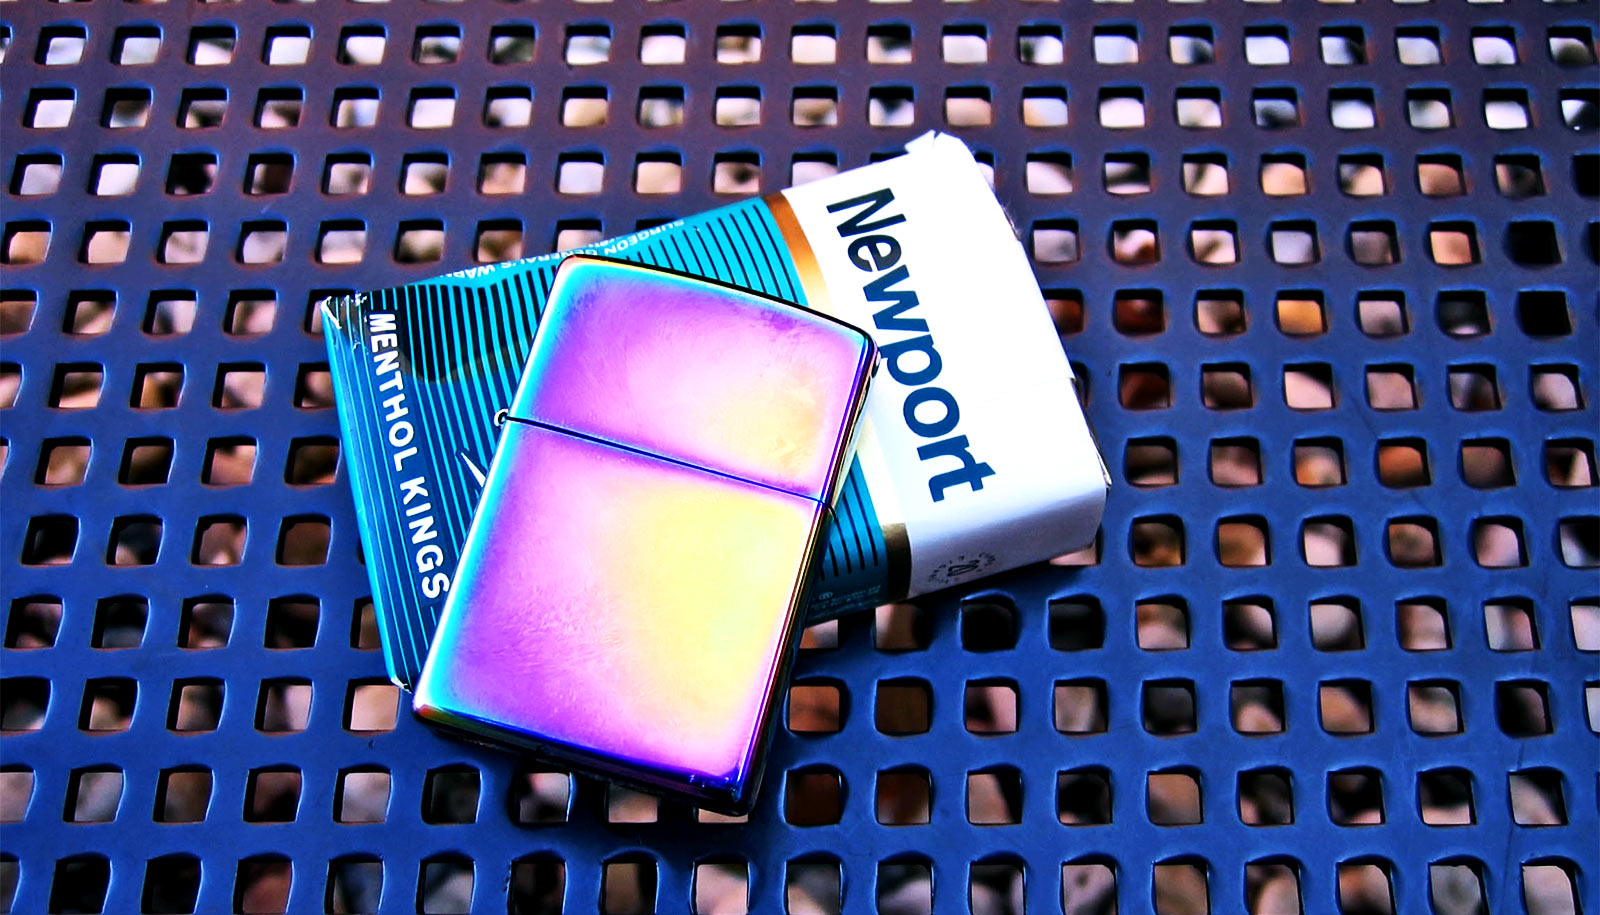 Courts would likely uphold FDA's menthol cigarette ban